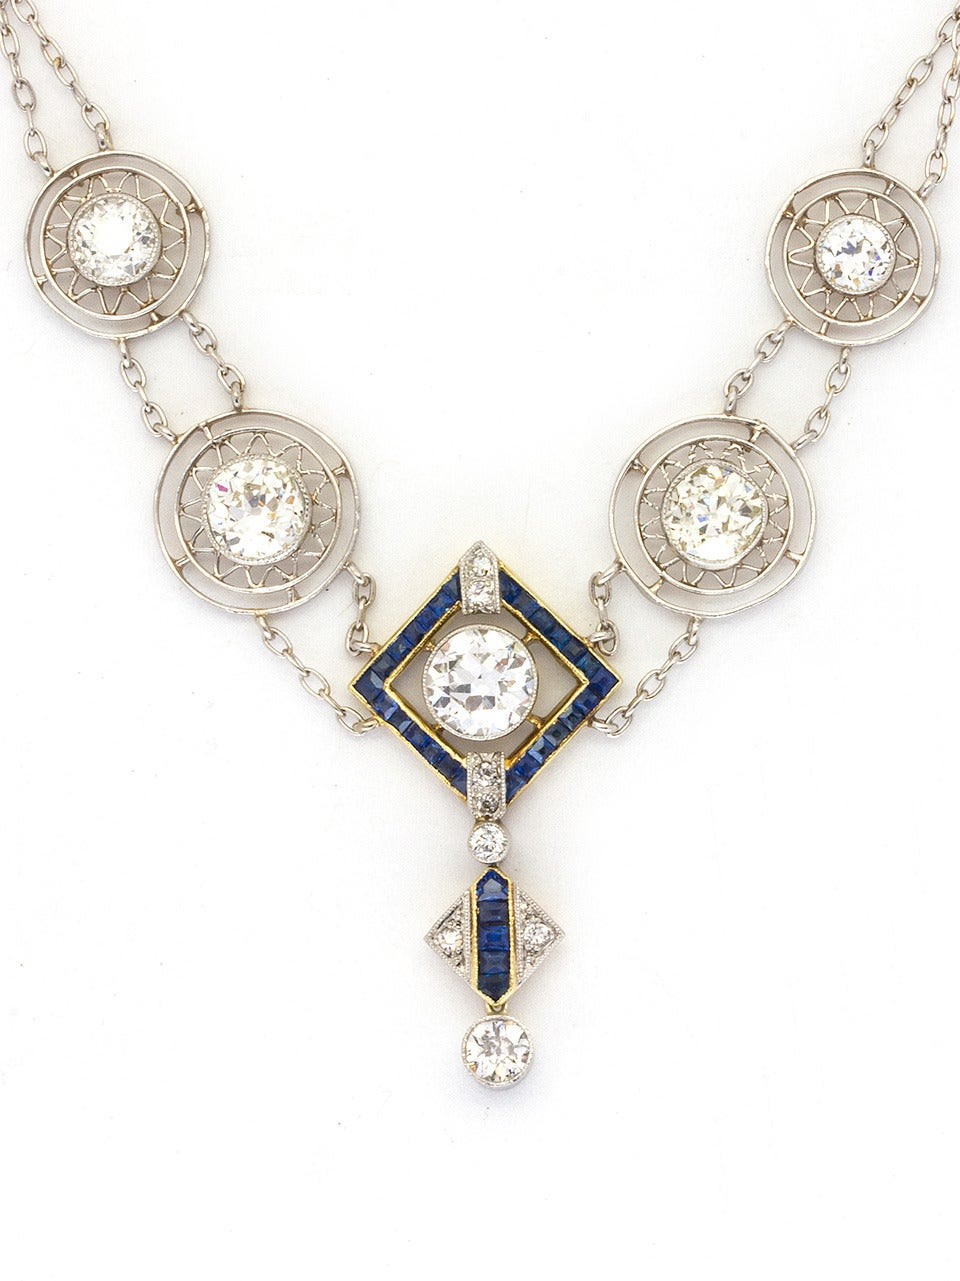 1920s Art Deco 3.50 Carat Platinum 18 Karat and Diamond Lavalier Necklace 2